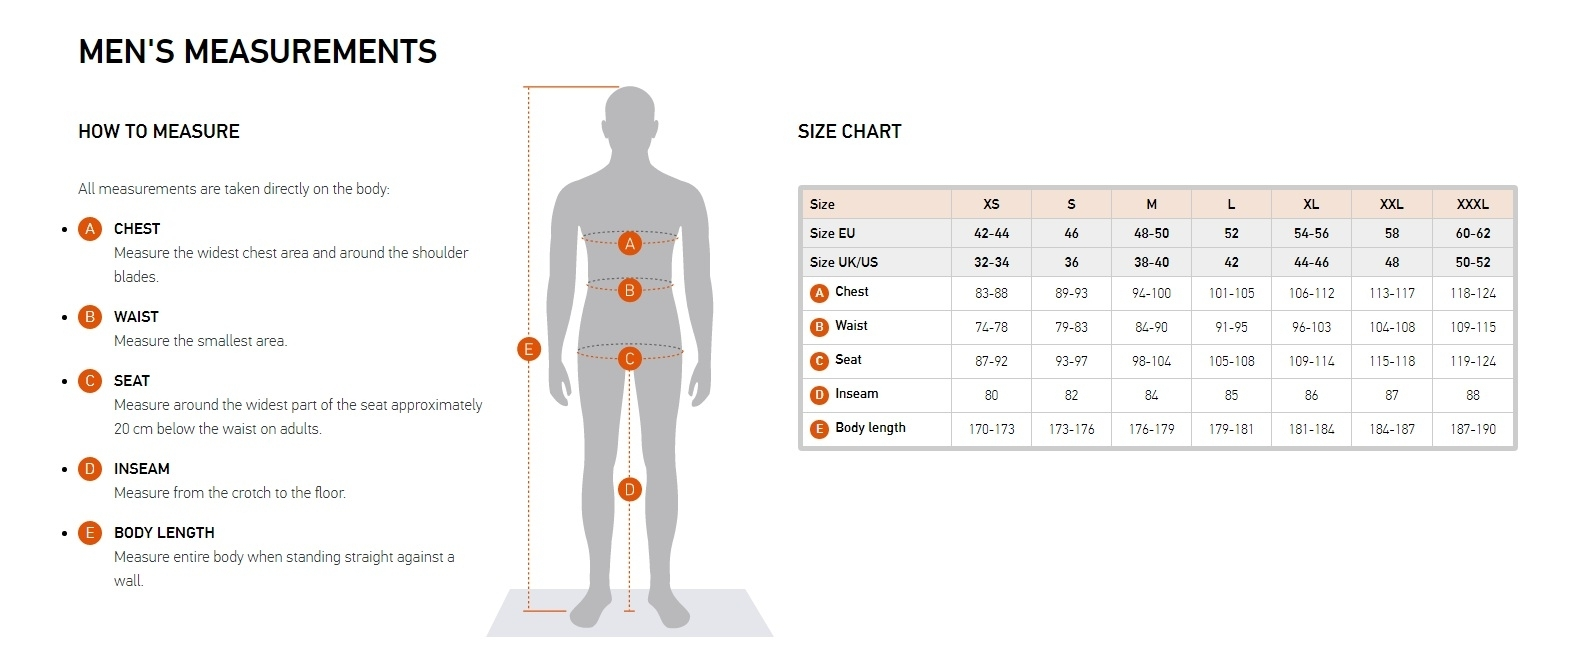 Men's measurements chart